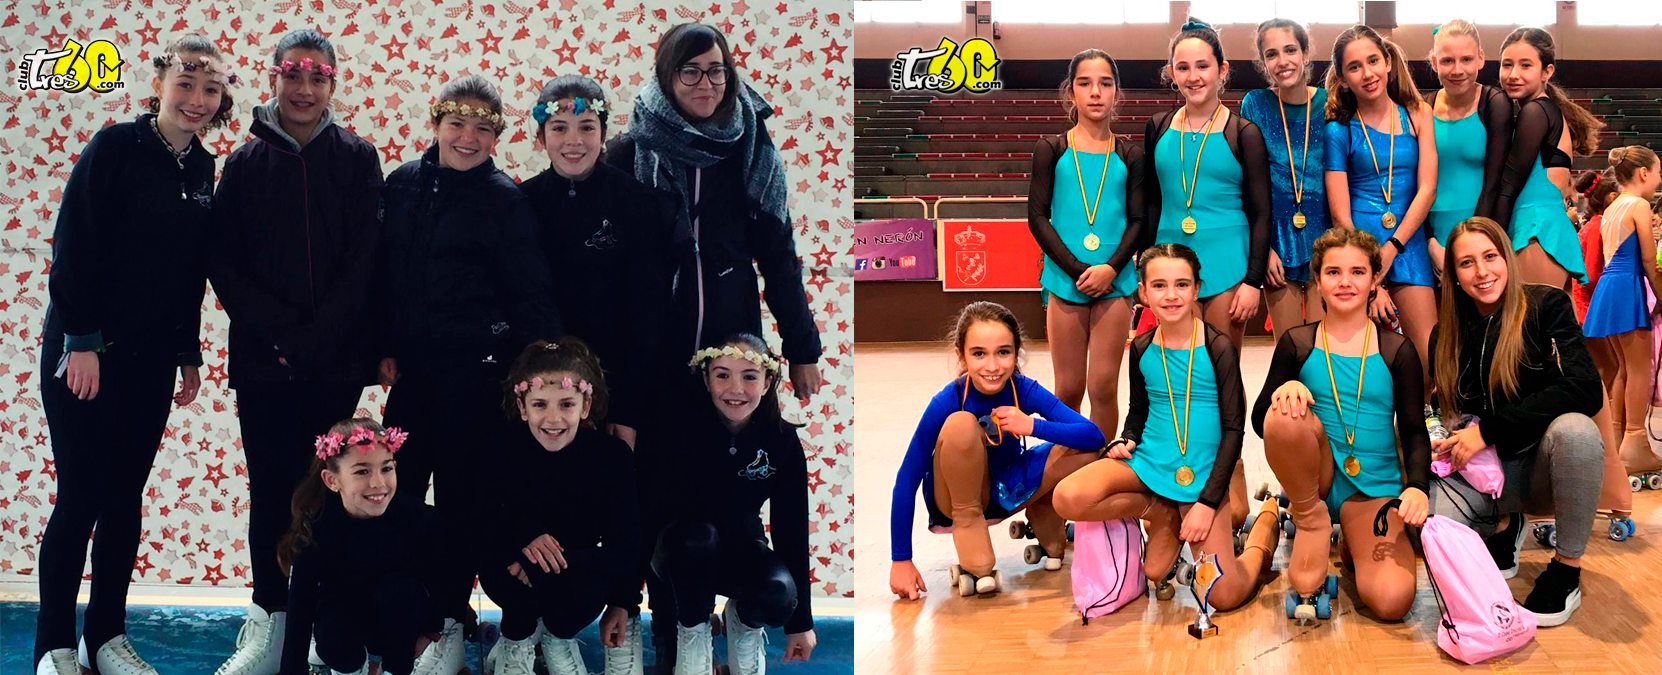 patinaje-artistico-club-tres60-madrid